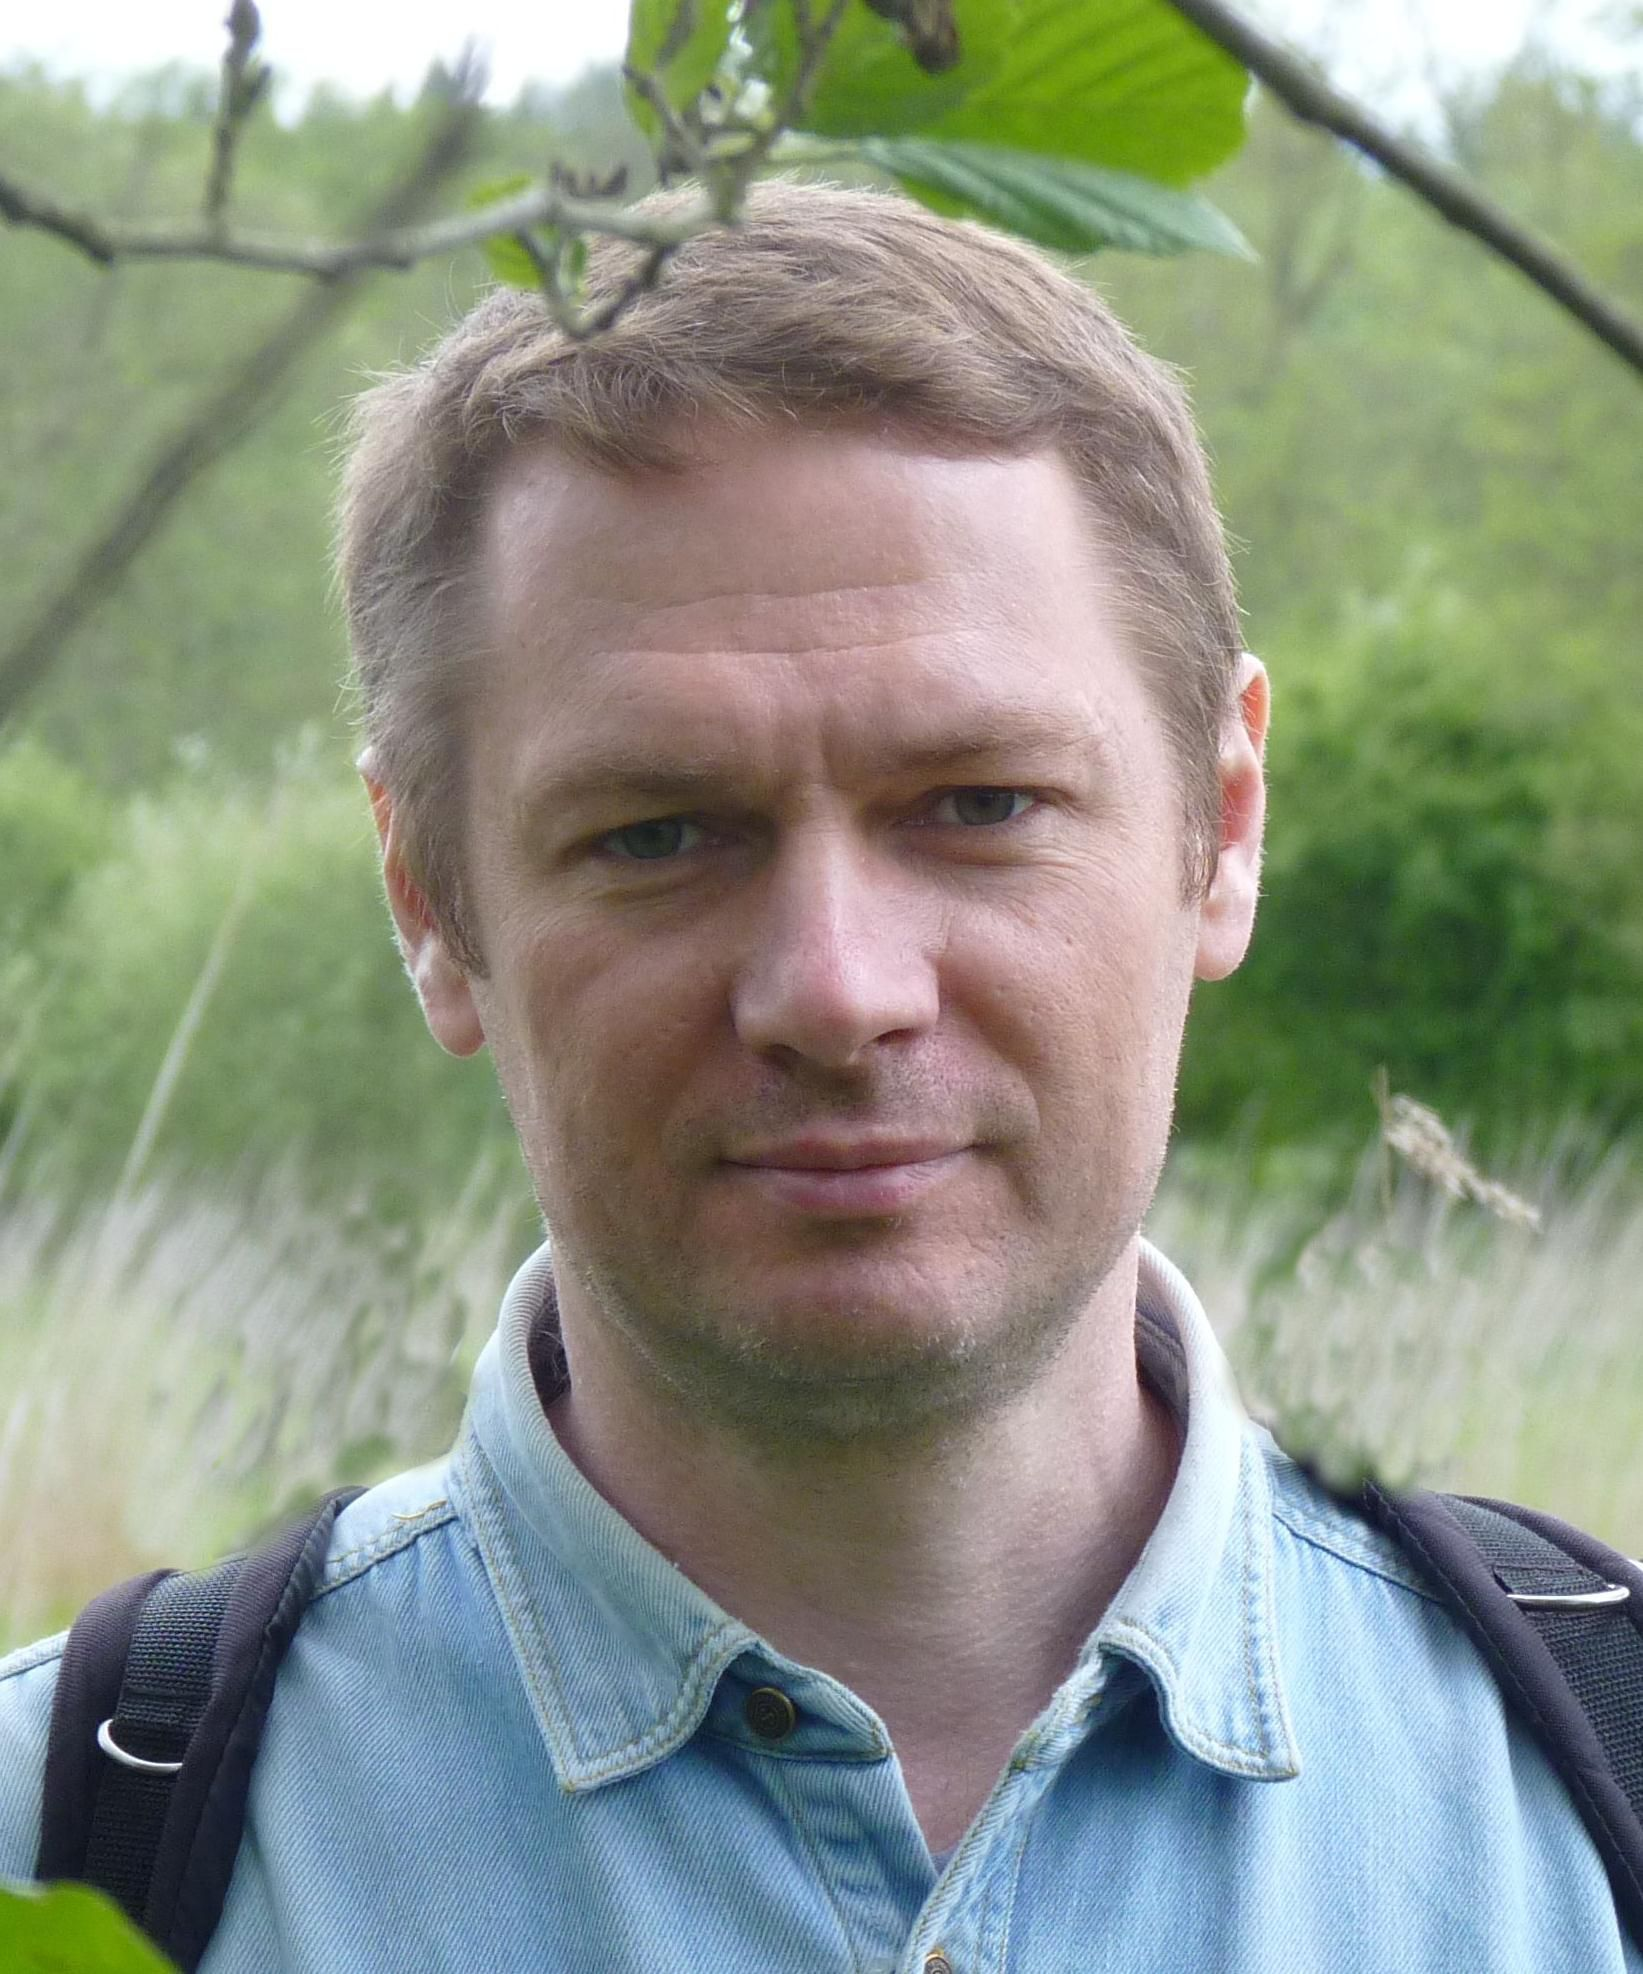 Photo of Dmitry Nerukh